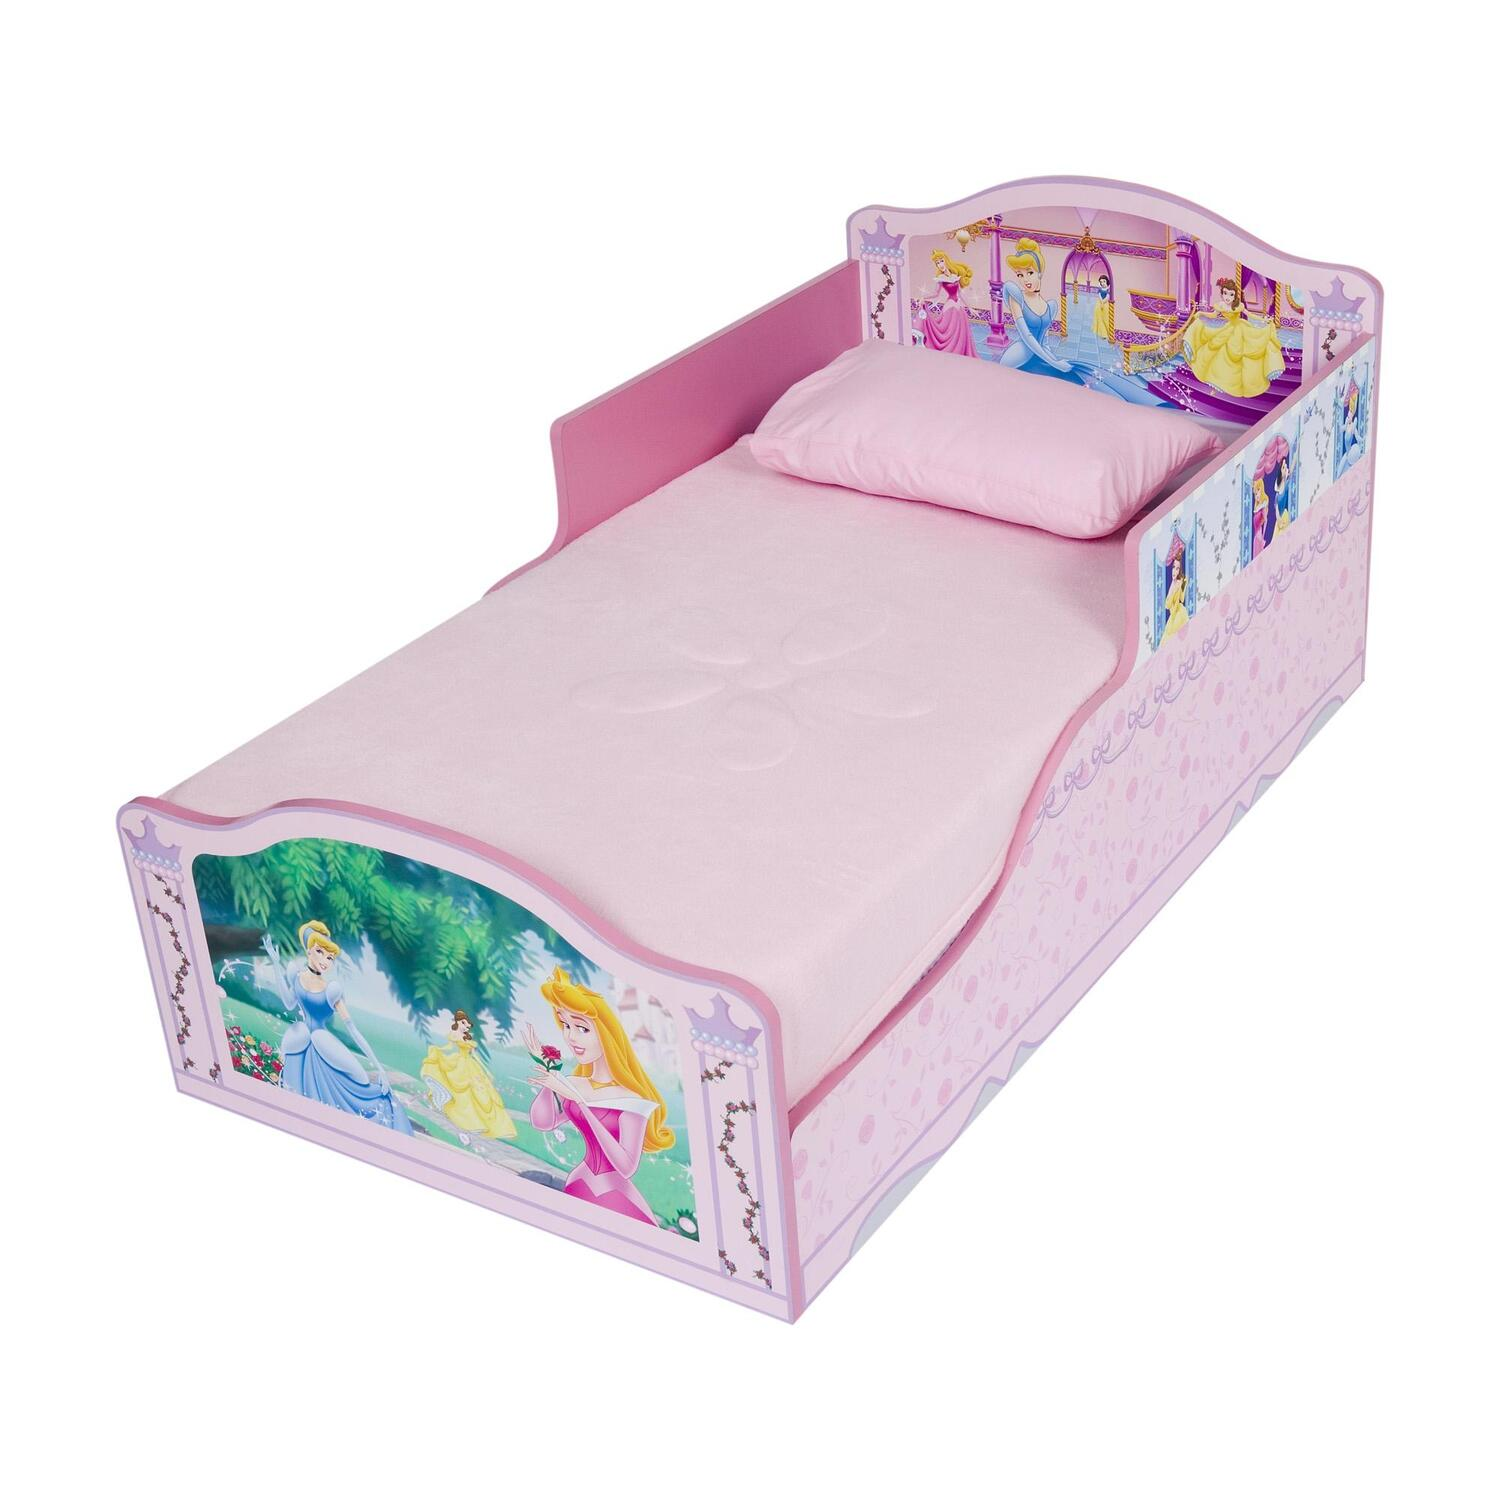 DISNEY Princess Wood Toddler Bed By OJ Commerce BB86622PS